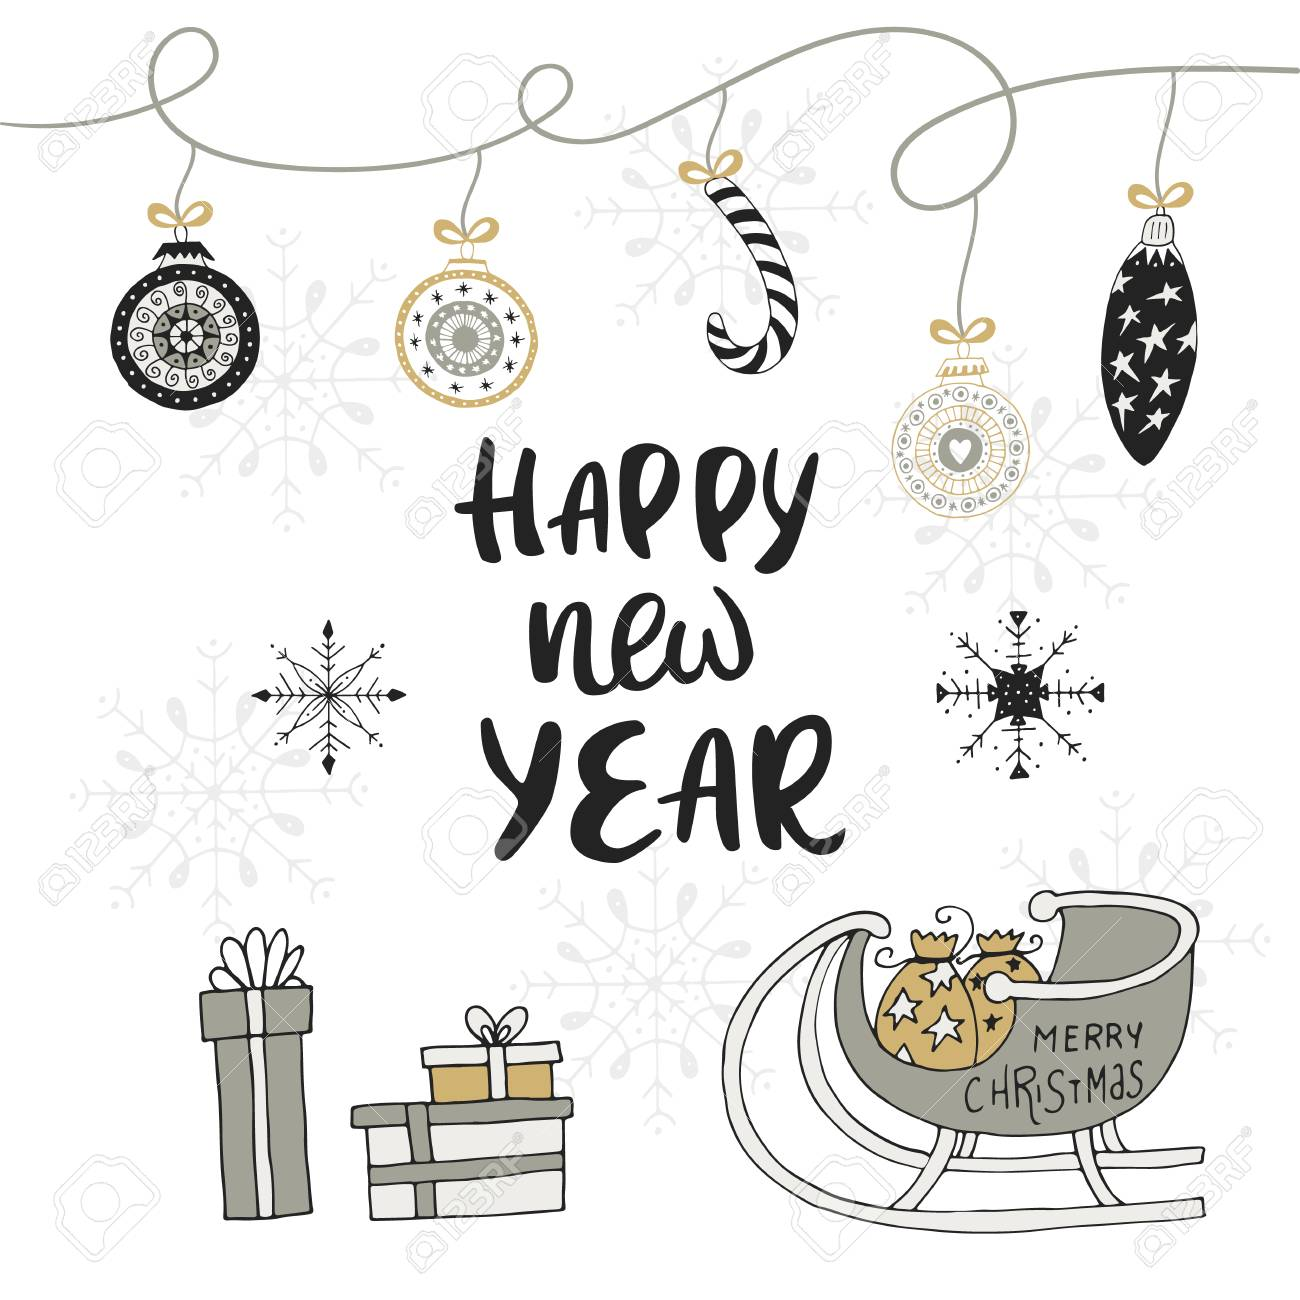 happy new year hand drawn christmas card with lettering and decorations cute new year